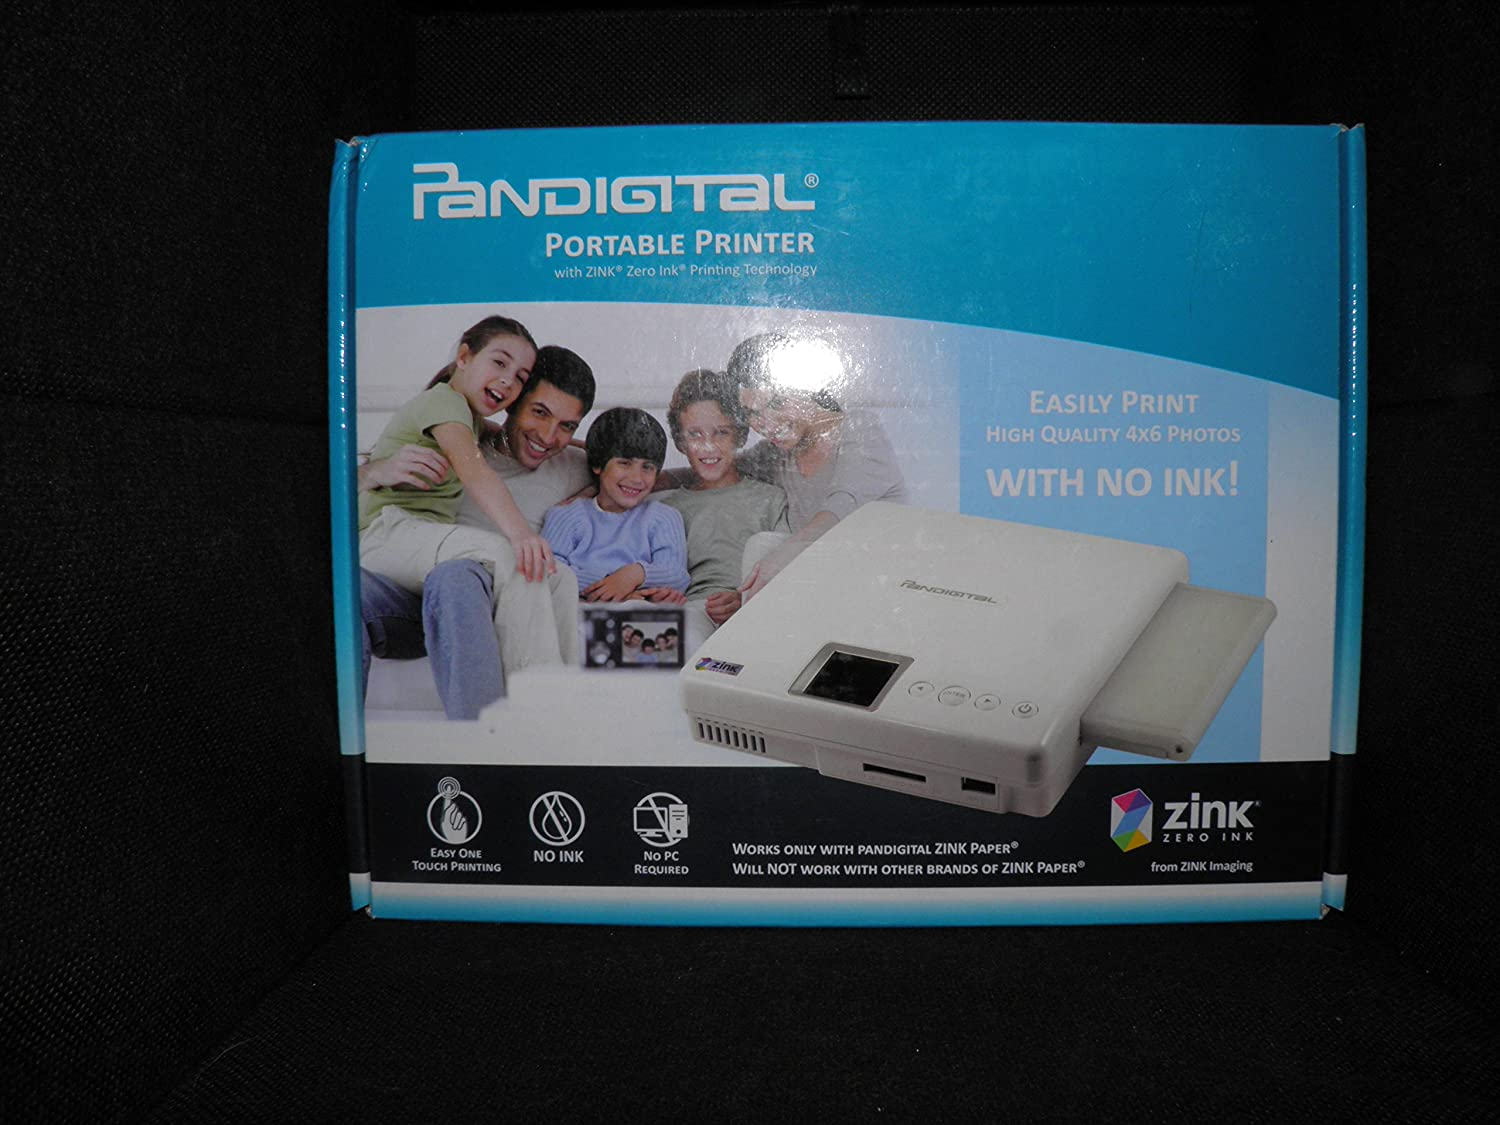 Top 10 Best Portable Photo Printer Reviews in 2020 3